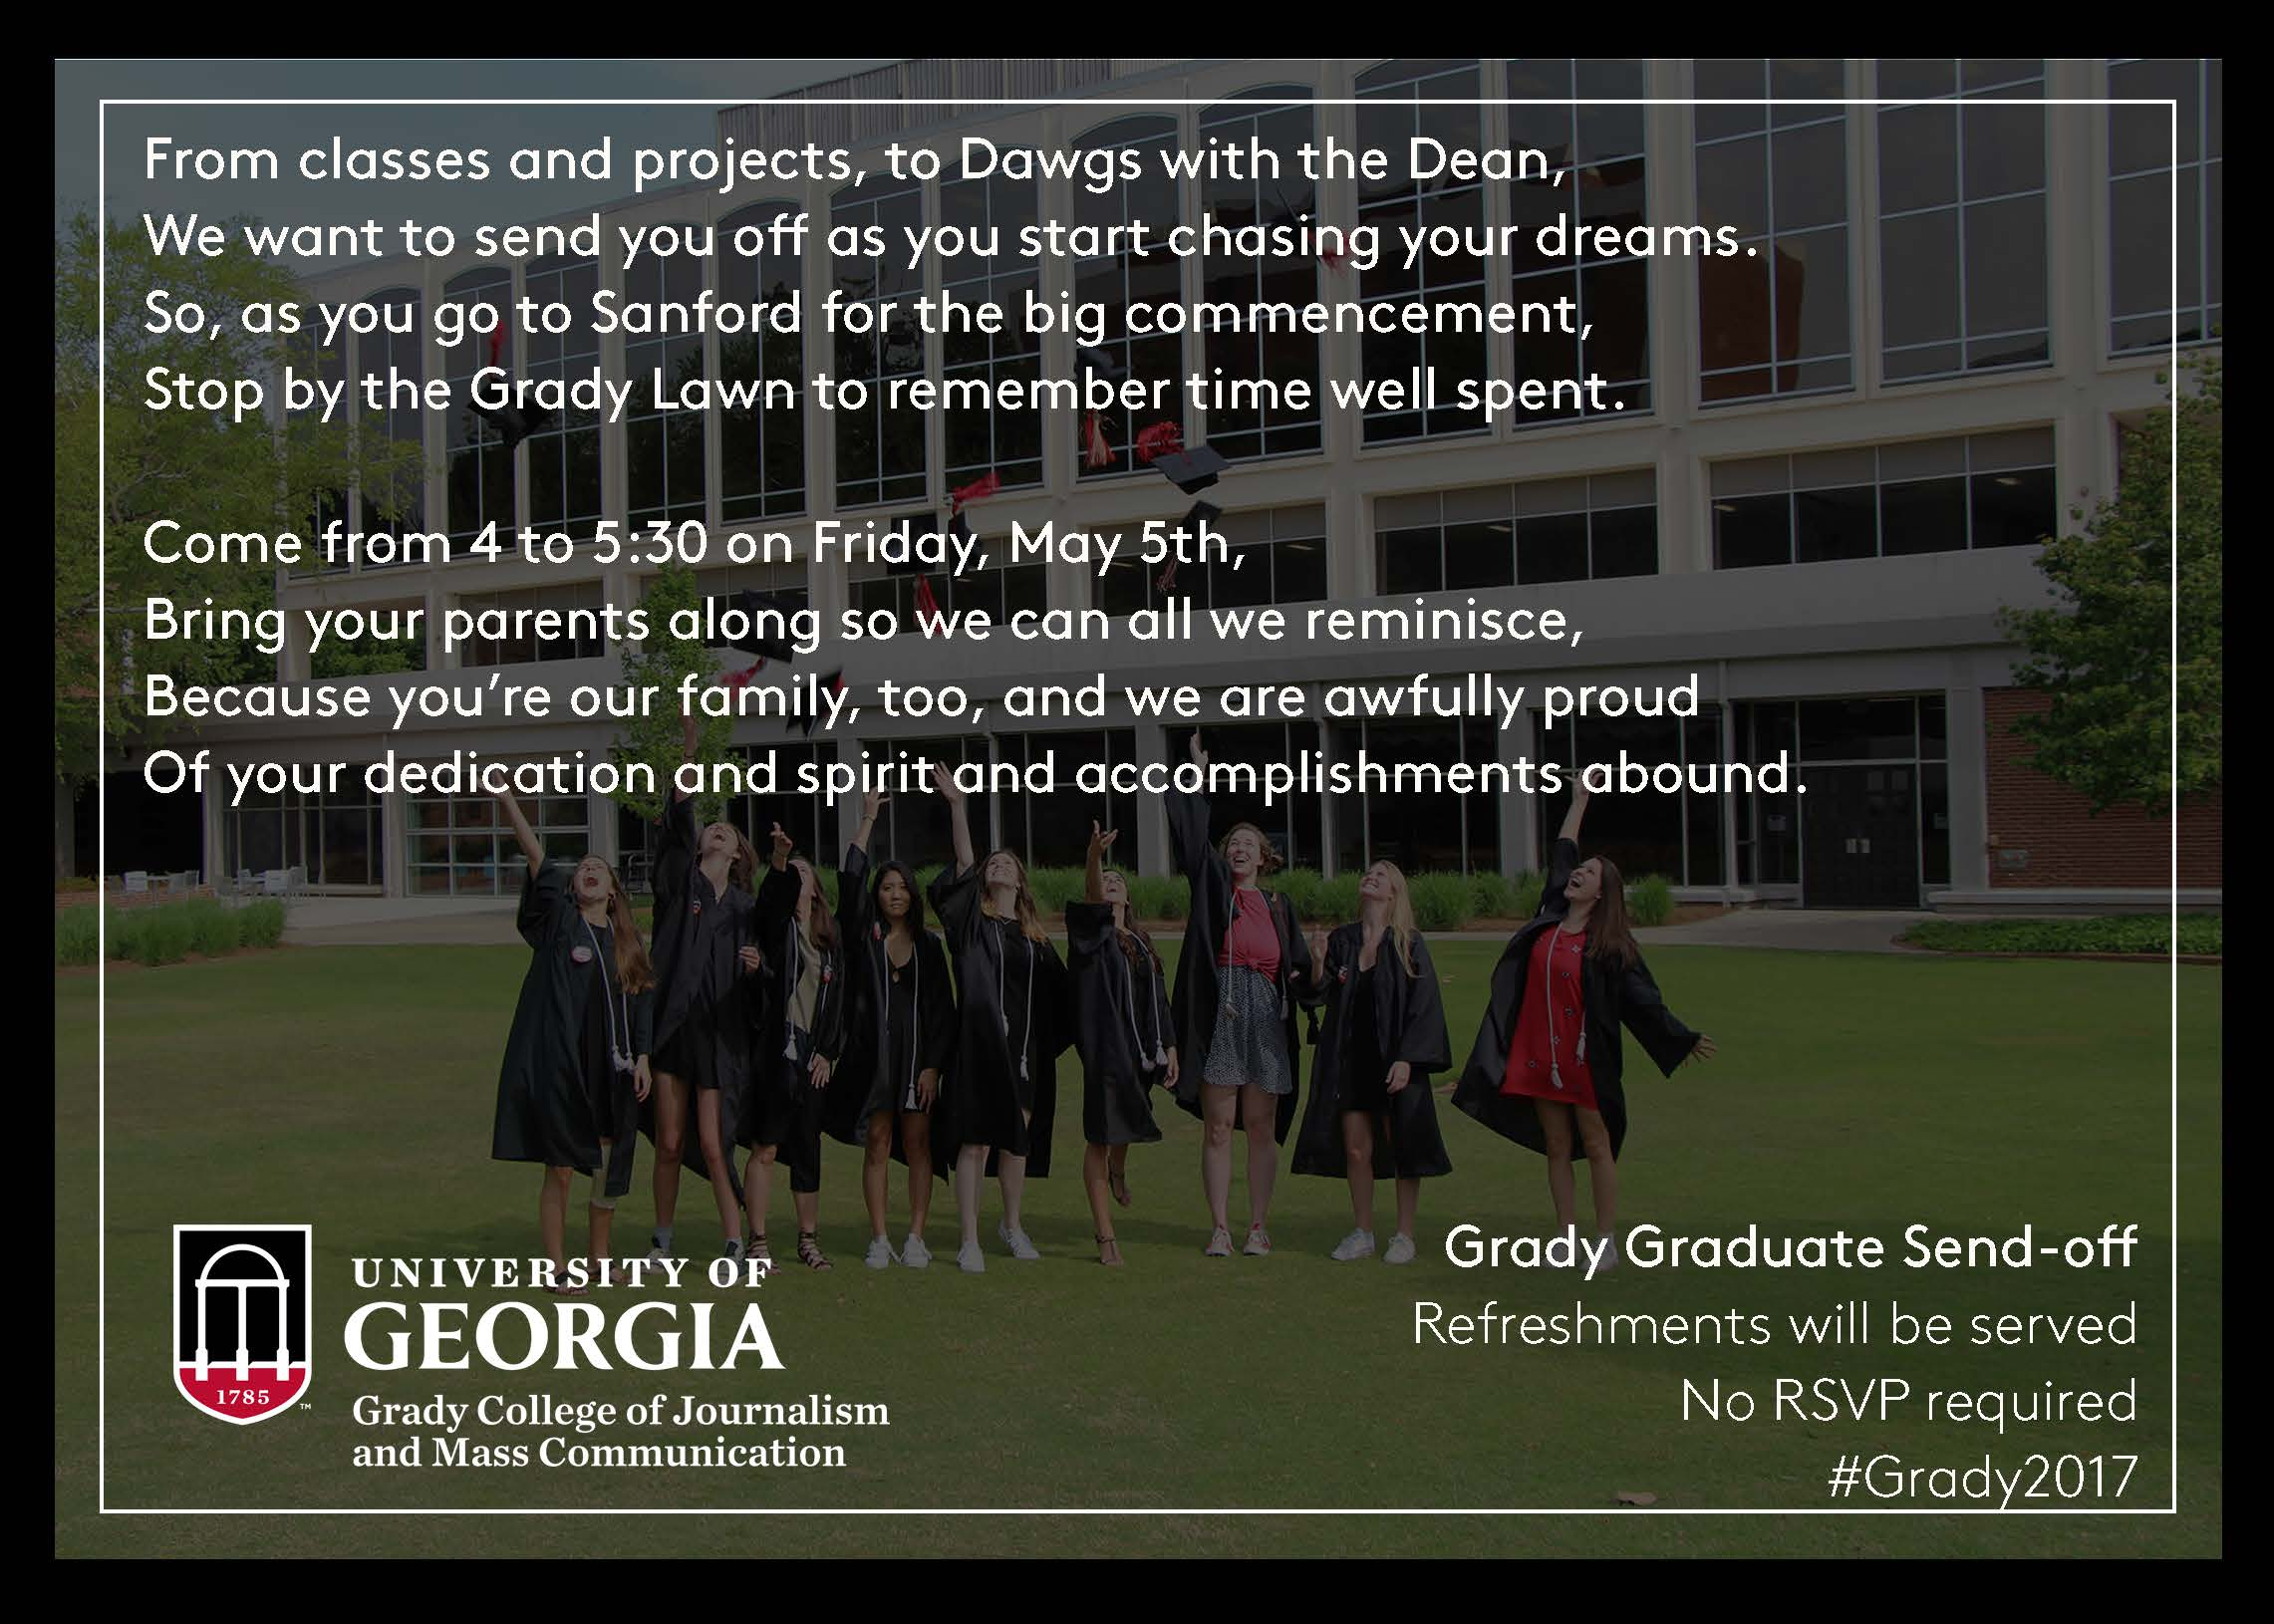 Grady Graduate Send-off. Join us on May 5th to celebrate our newest Grady Graduates.